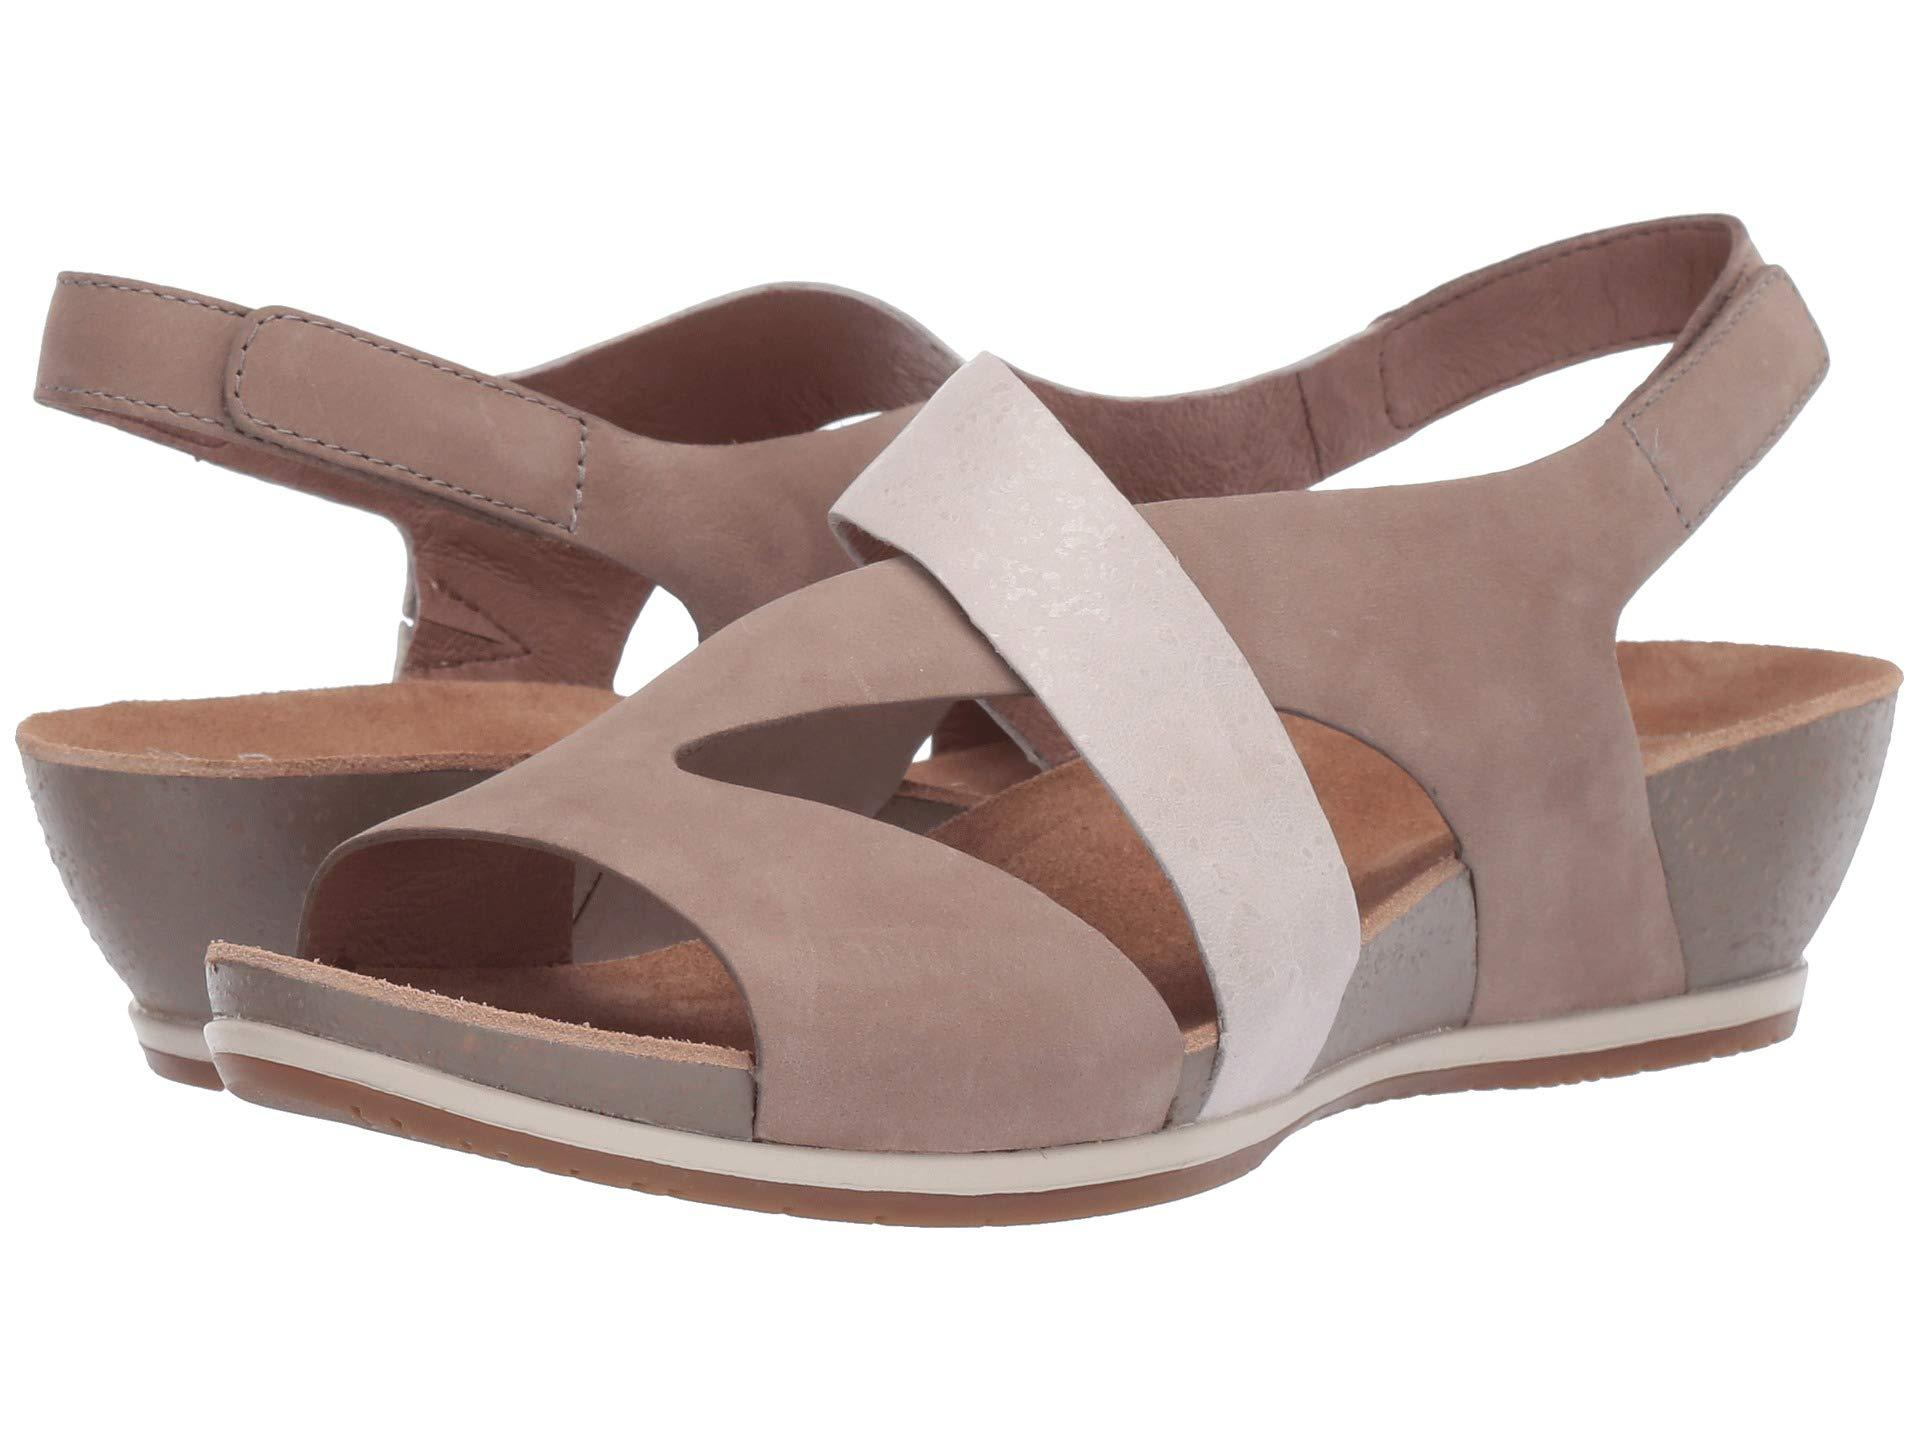 950d81ae09d3 Lyst - Dansko Vicky (black Milled Nubuck) Women s Sandals in Brown ...